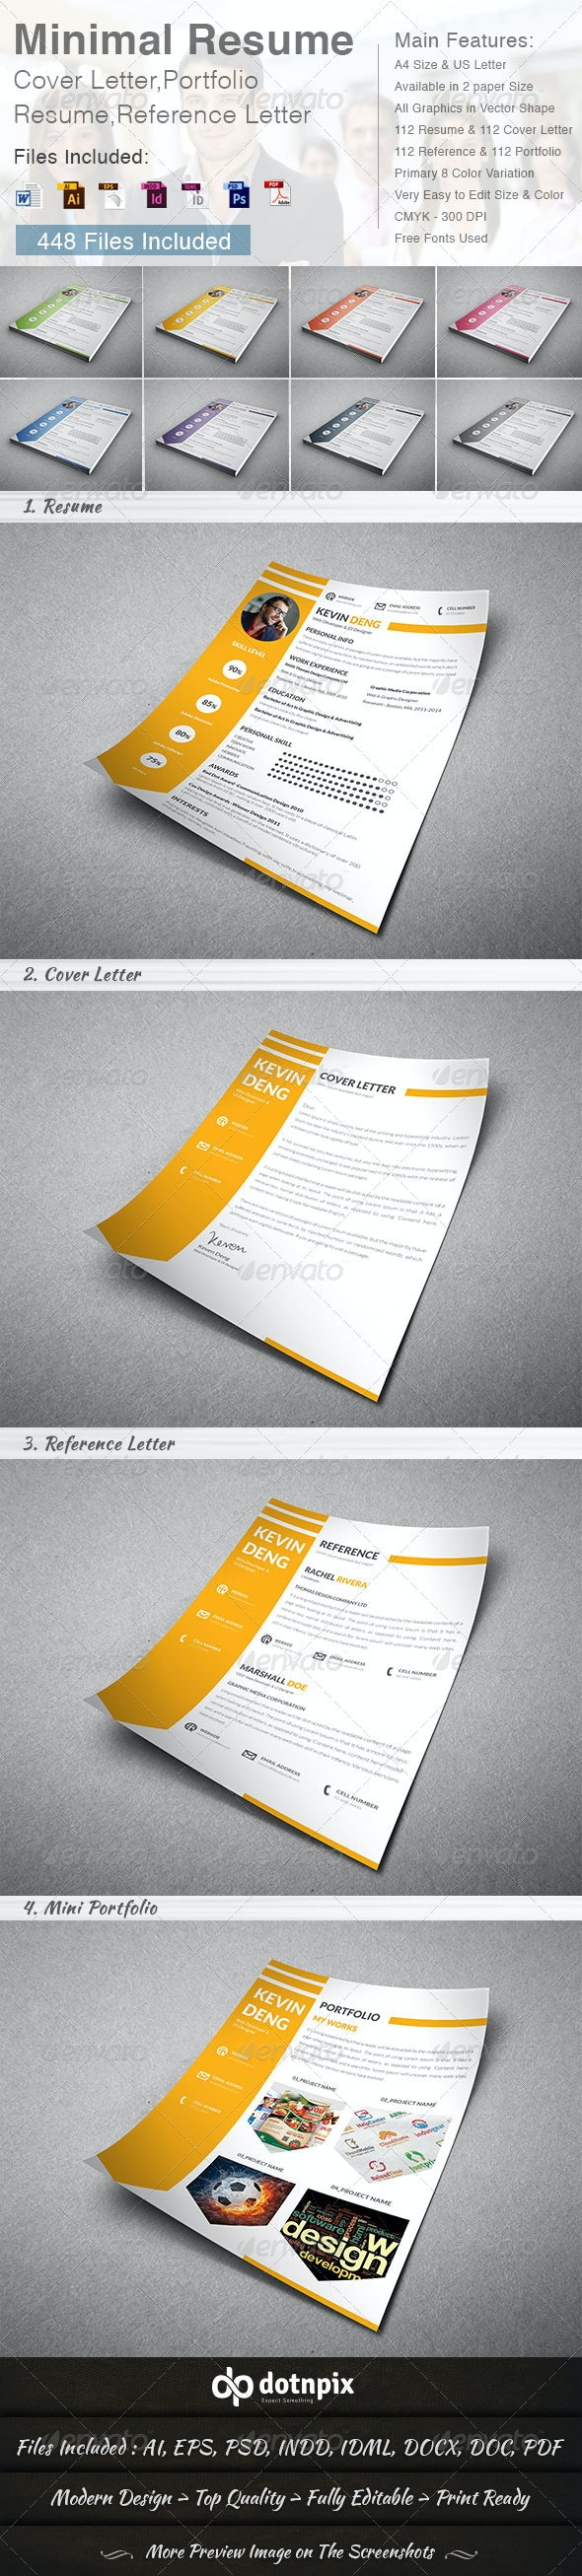 Minimal Resume - Cover Letter (4 in 1) - Resumes Stationery